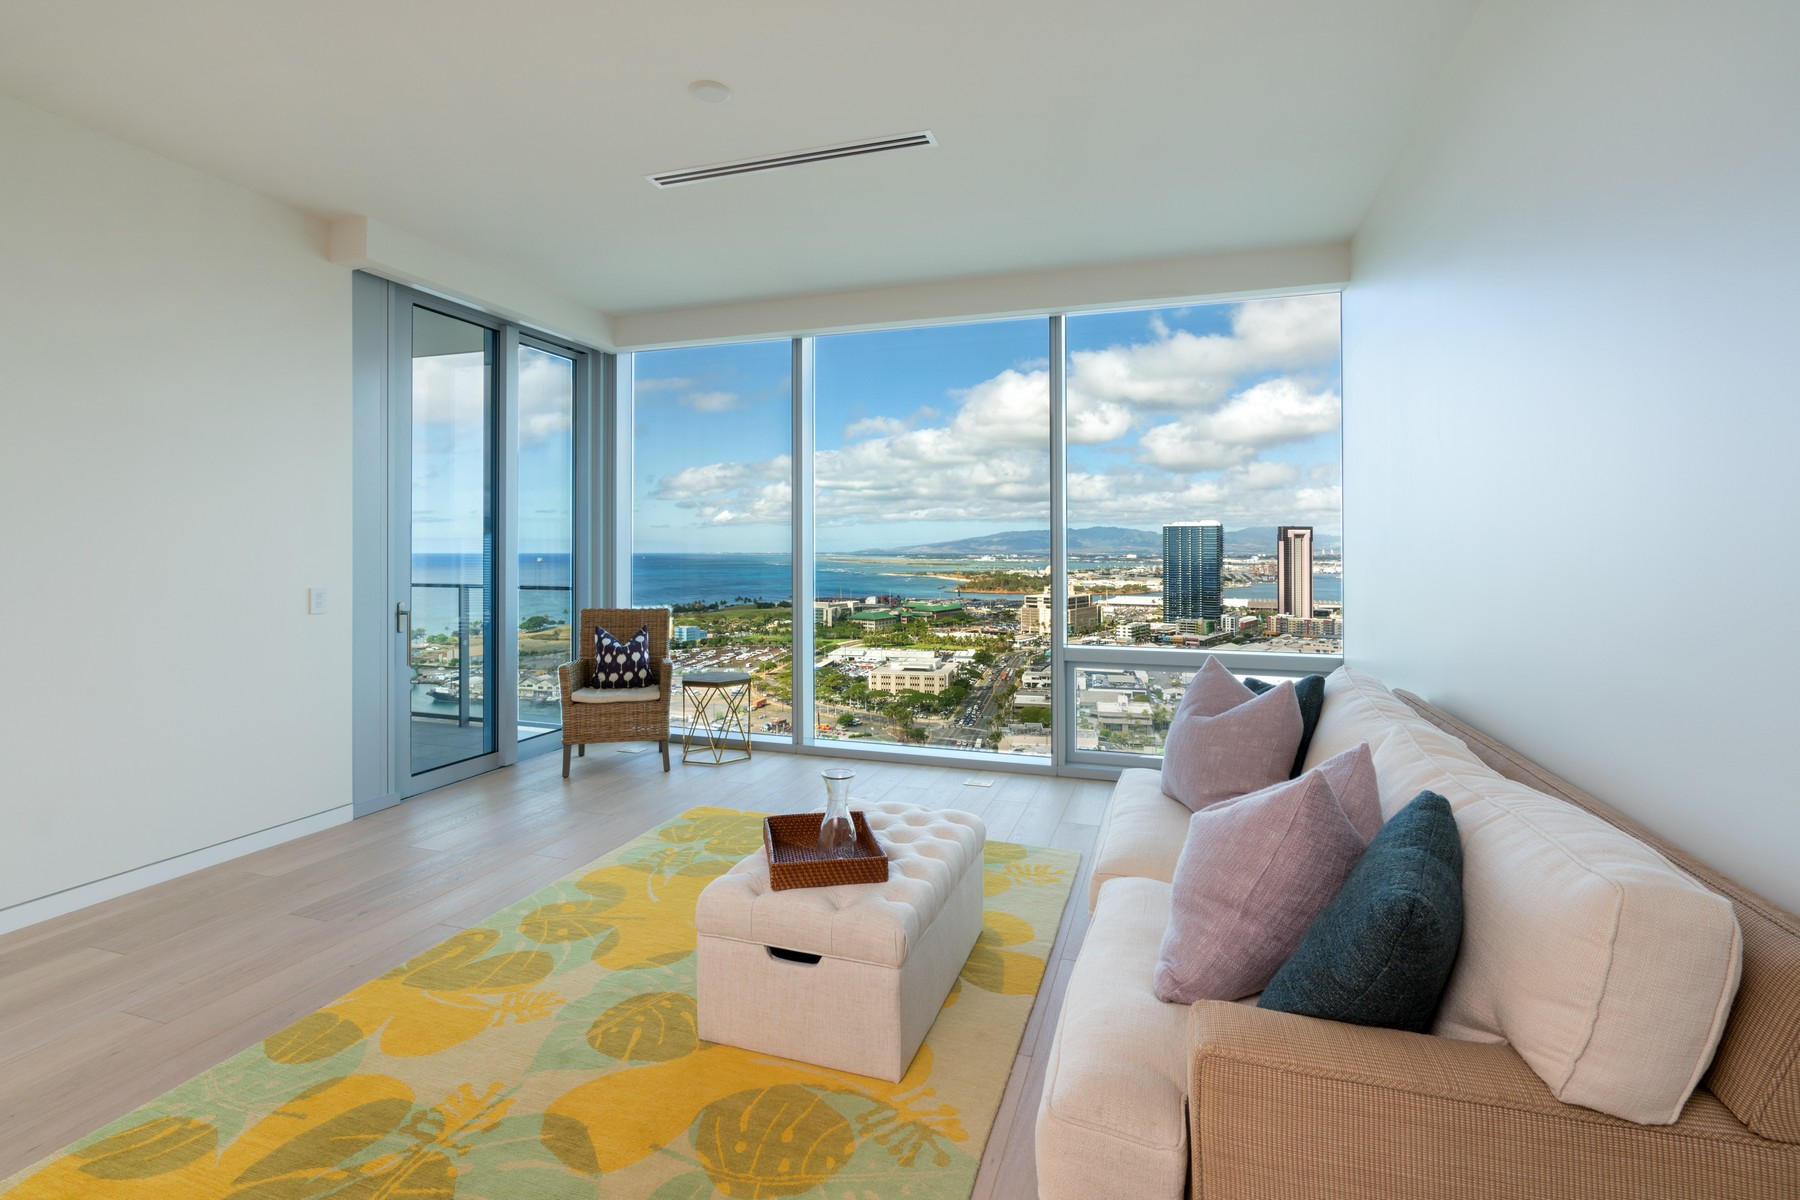 Condominium for Sale at Panoramic Ocean View Waiea Condo 1118 Ala Moana Blvd #2903 Honolulu, Hawaii 96814 United States